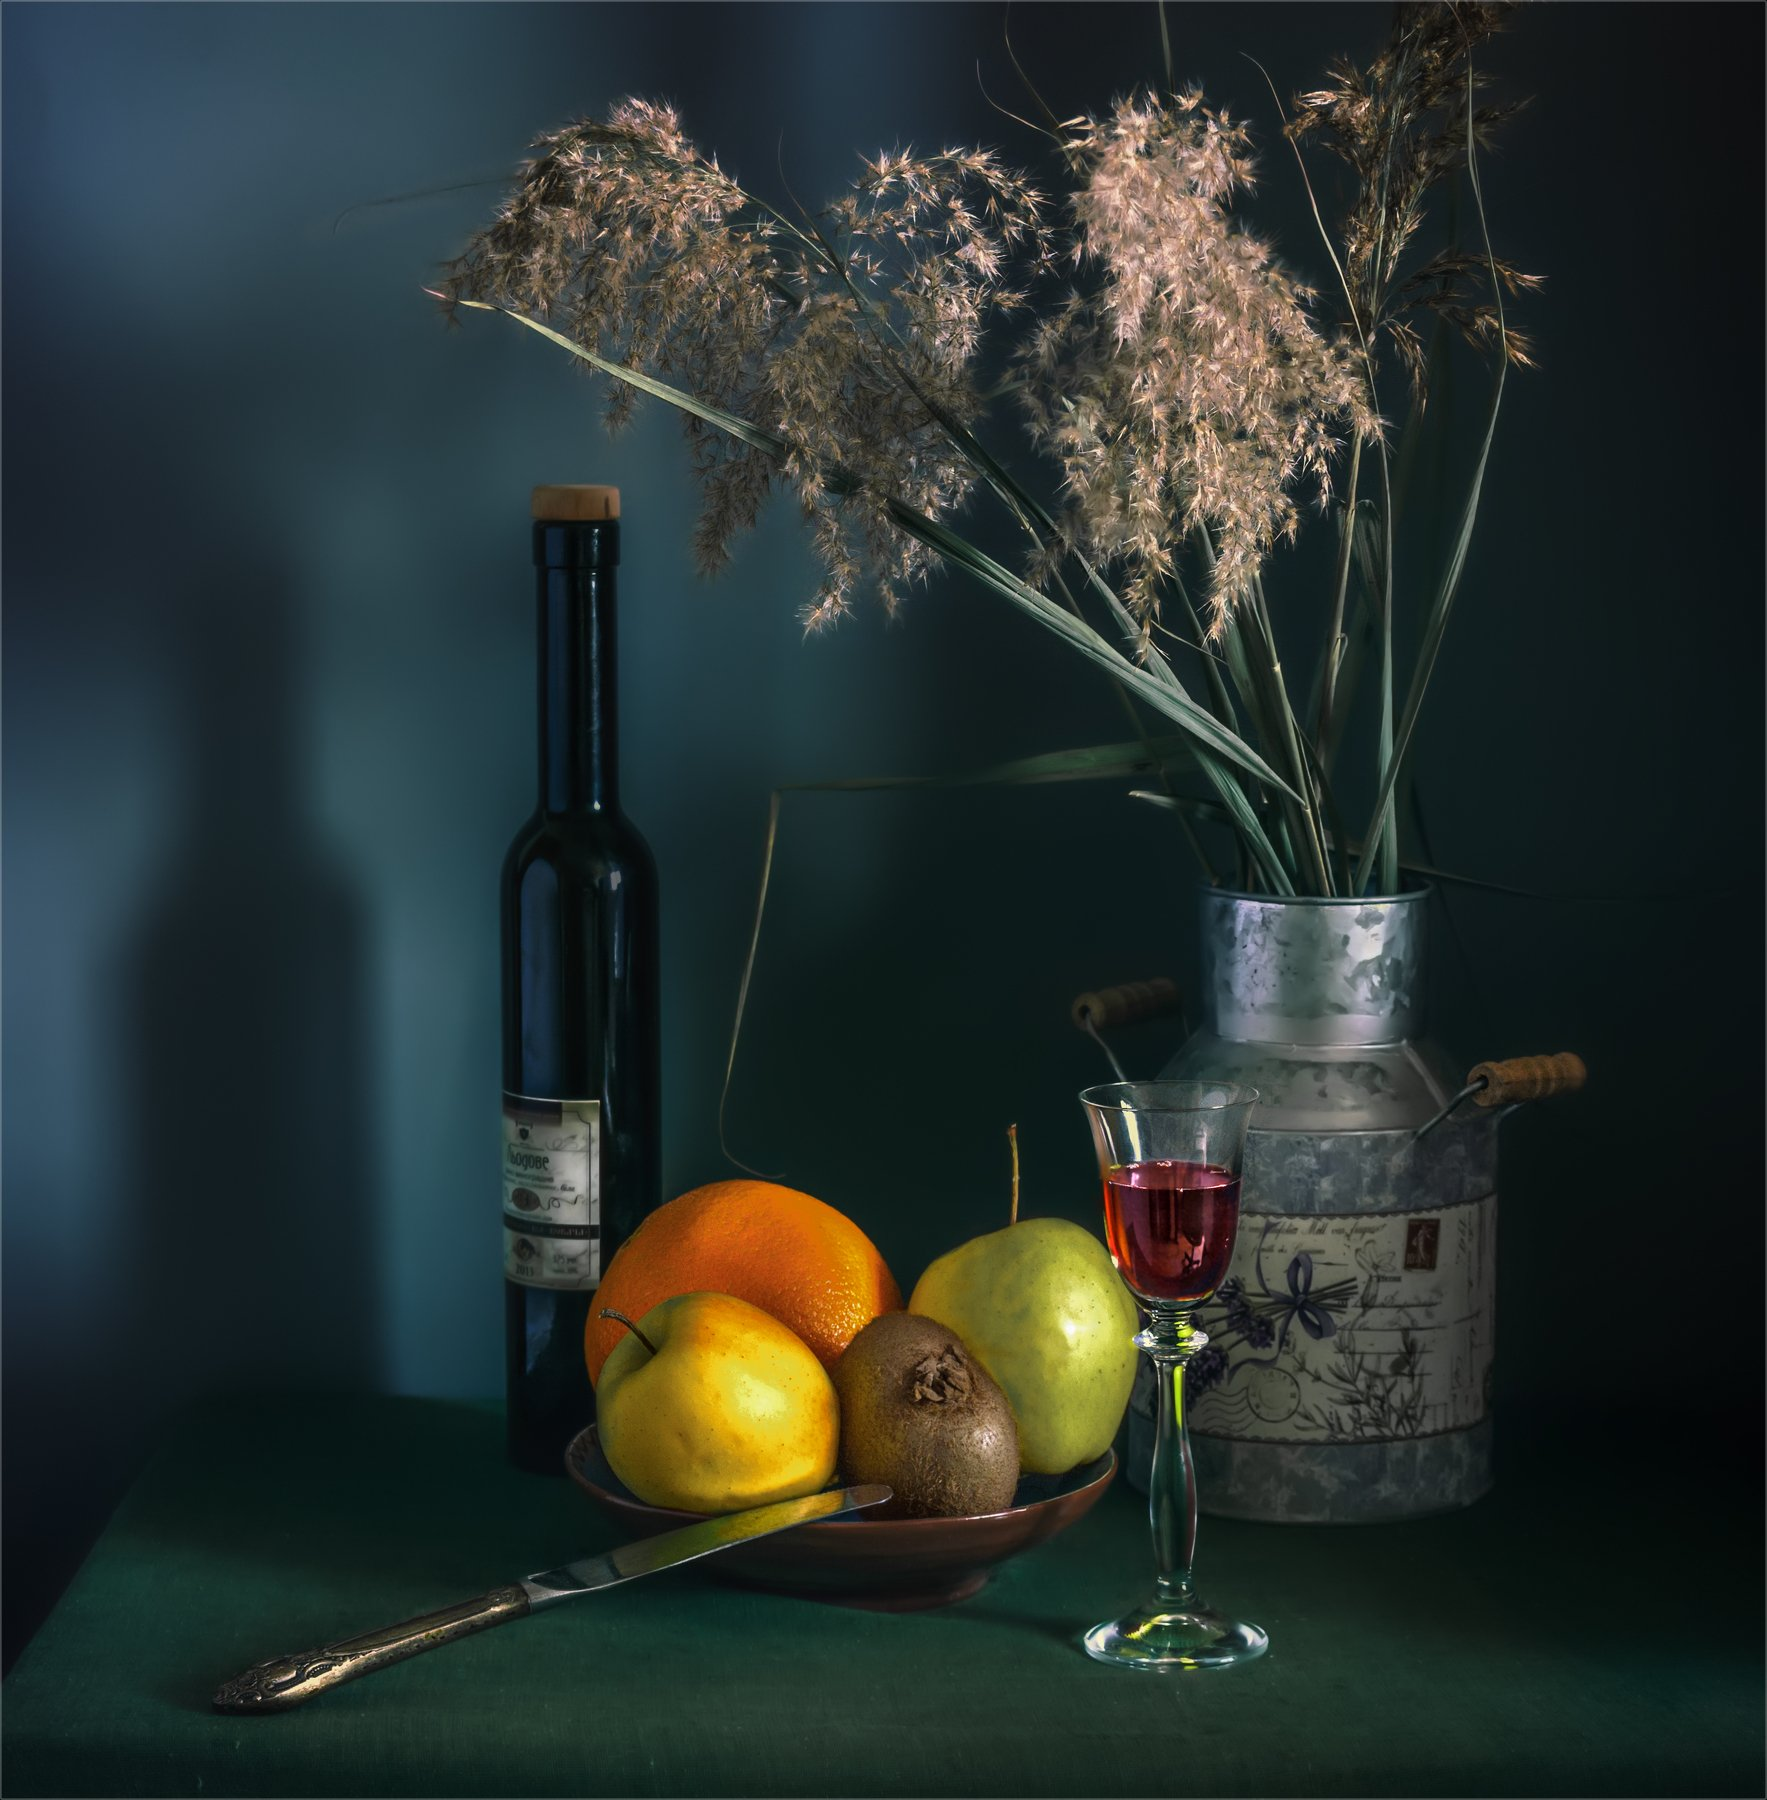 Amazing Still Life Photography